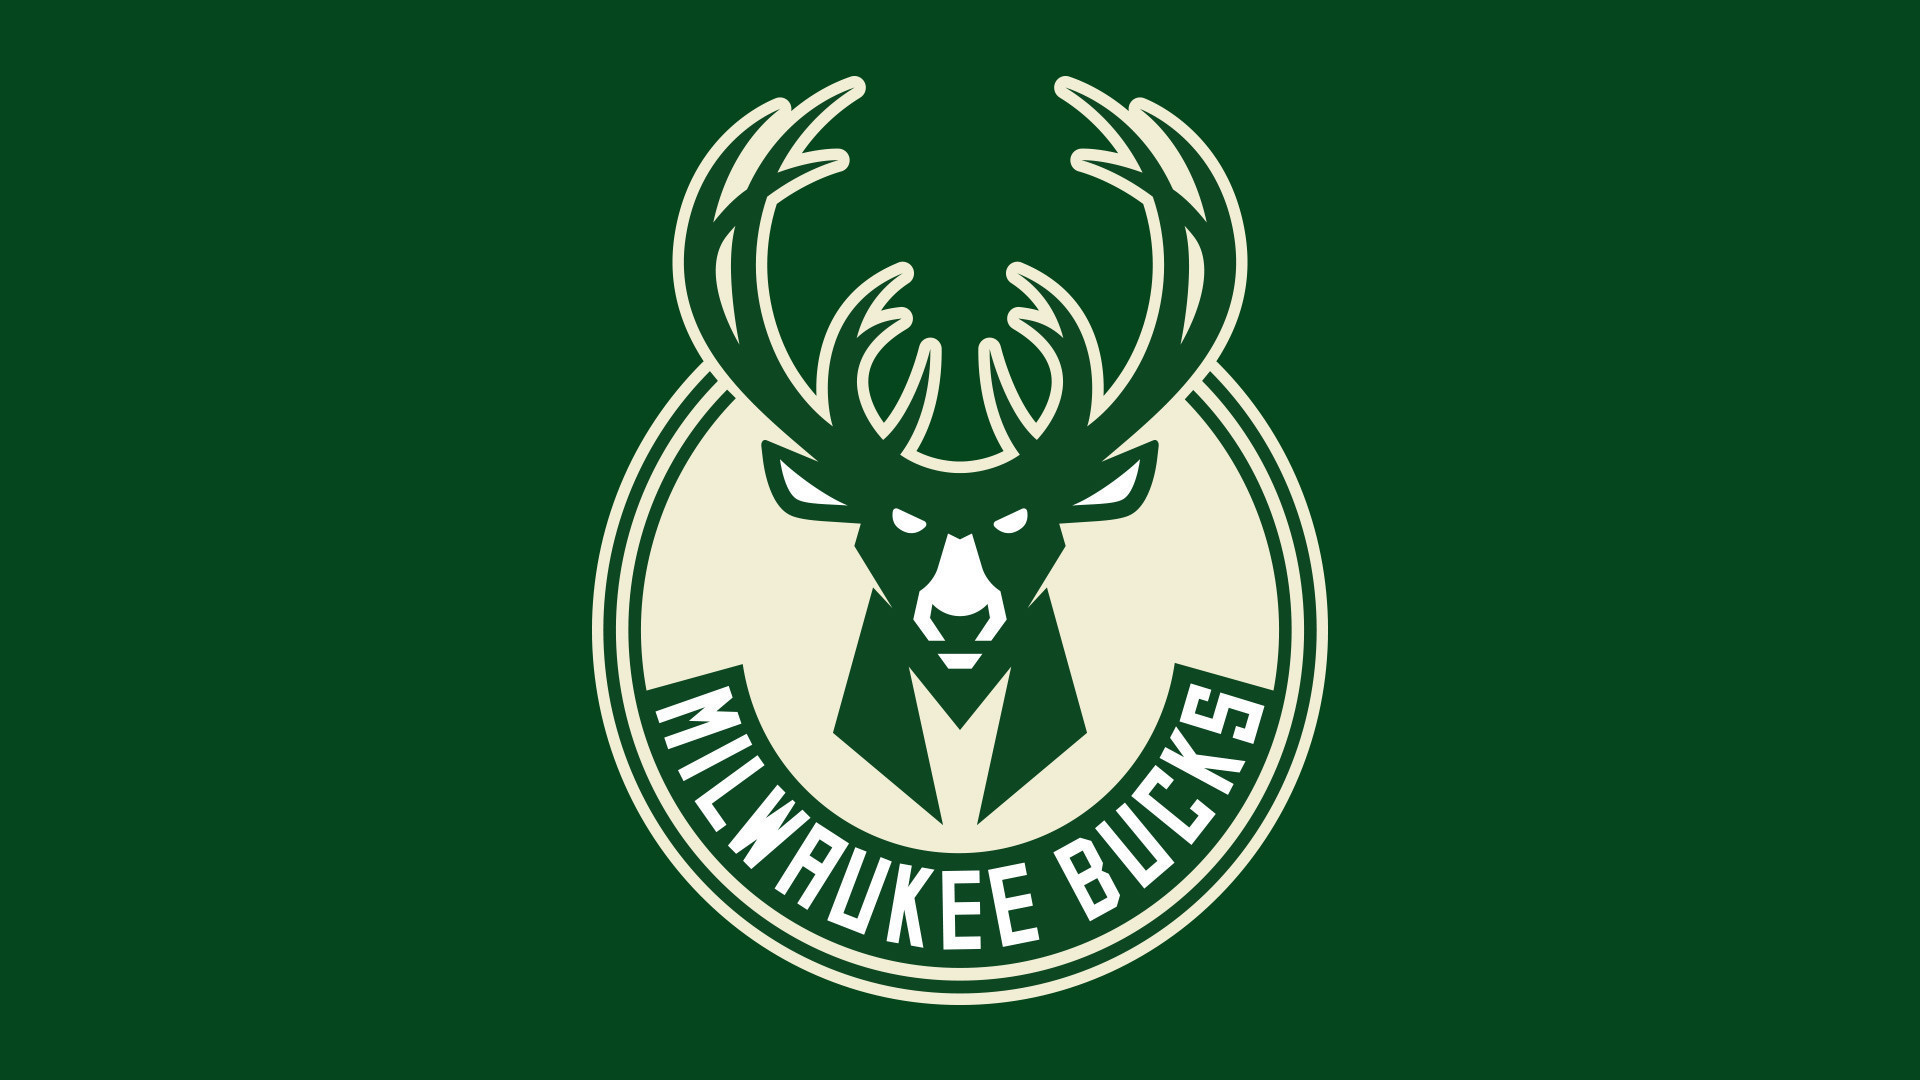 NBA complains about high school's sports logo - Chicago ...